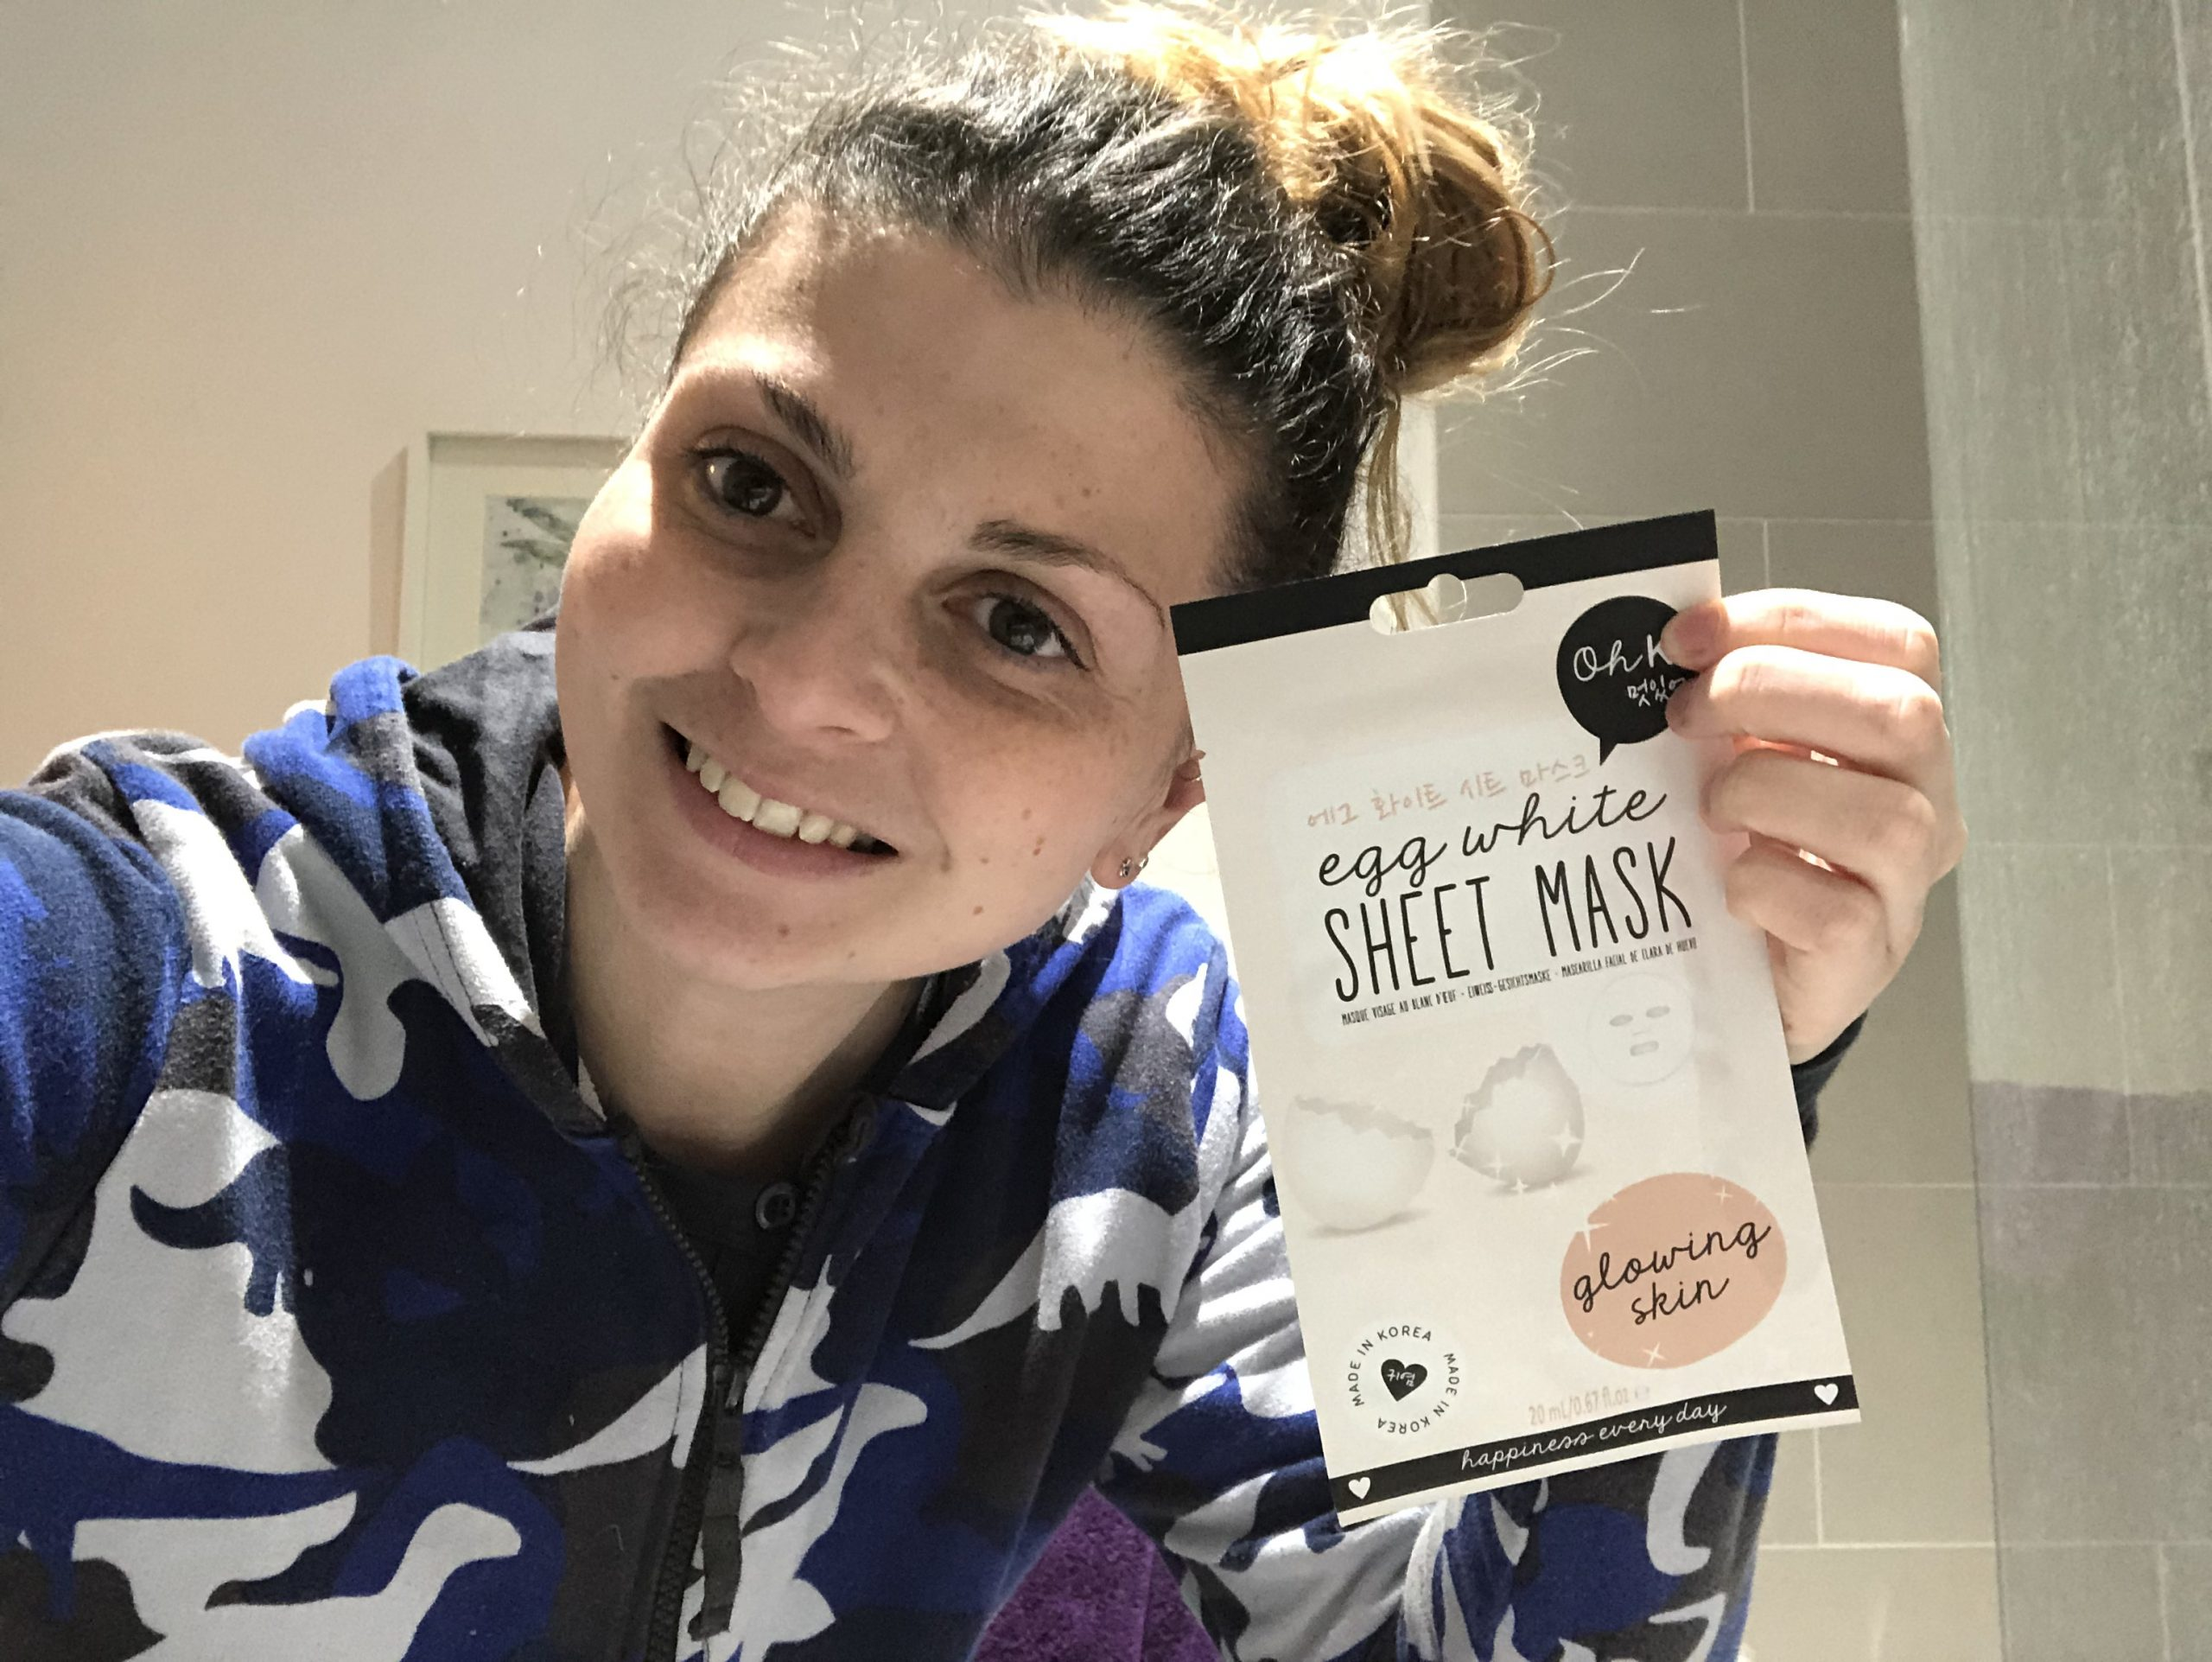 Oh K! Egg White Sheet Mask Review graphic